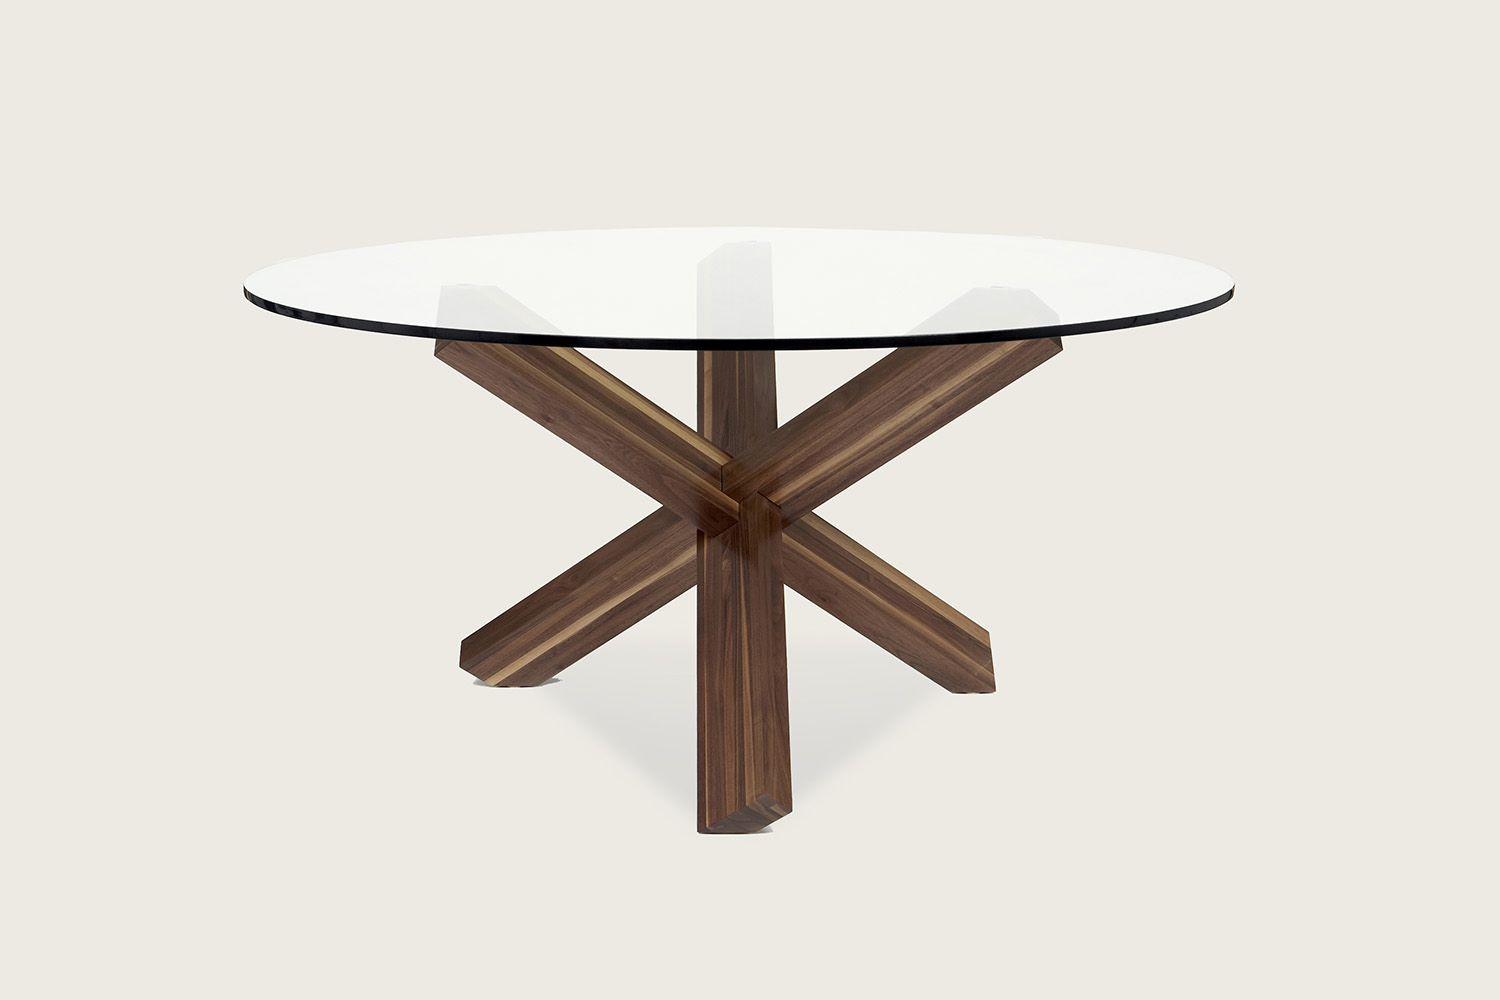 Think Pedestal Dining Table in solid walnut with glass top - Speke Klein